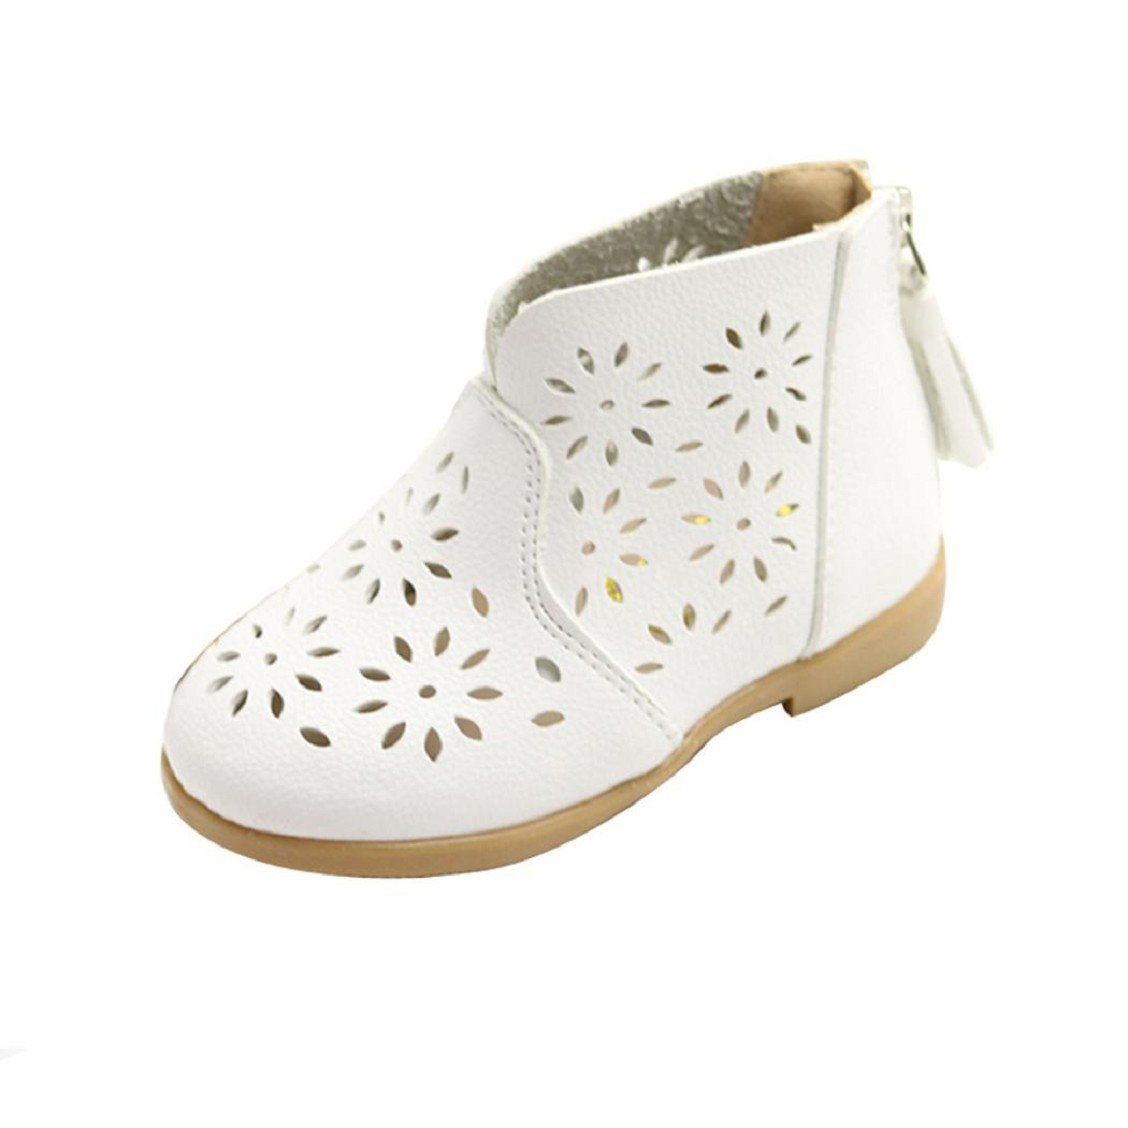 Naladoo Baby Girls Summer Breathable Tassel Sandals Kids Children Princess Boot Shoes (1 years old, White)